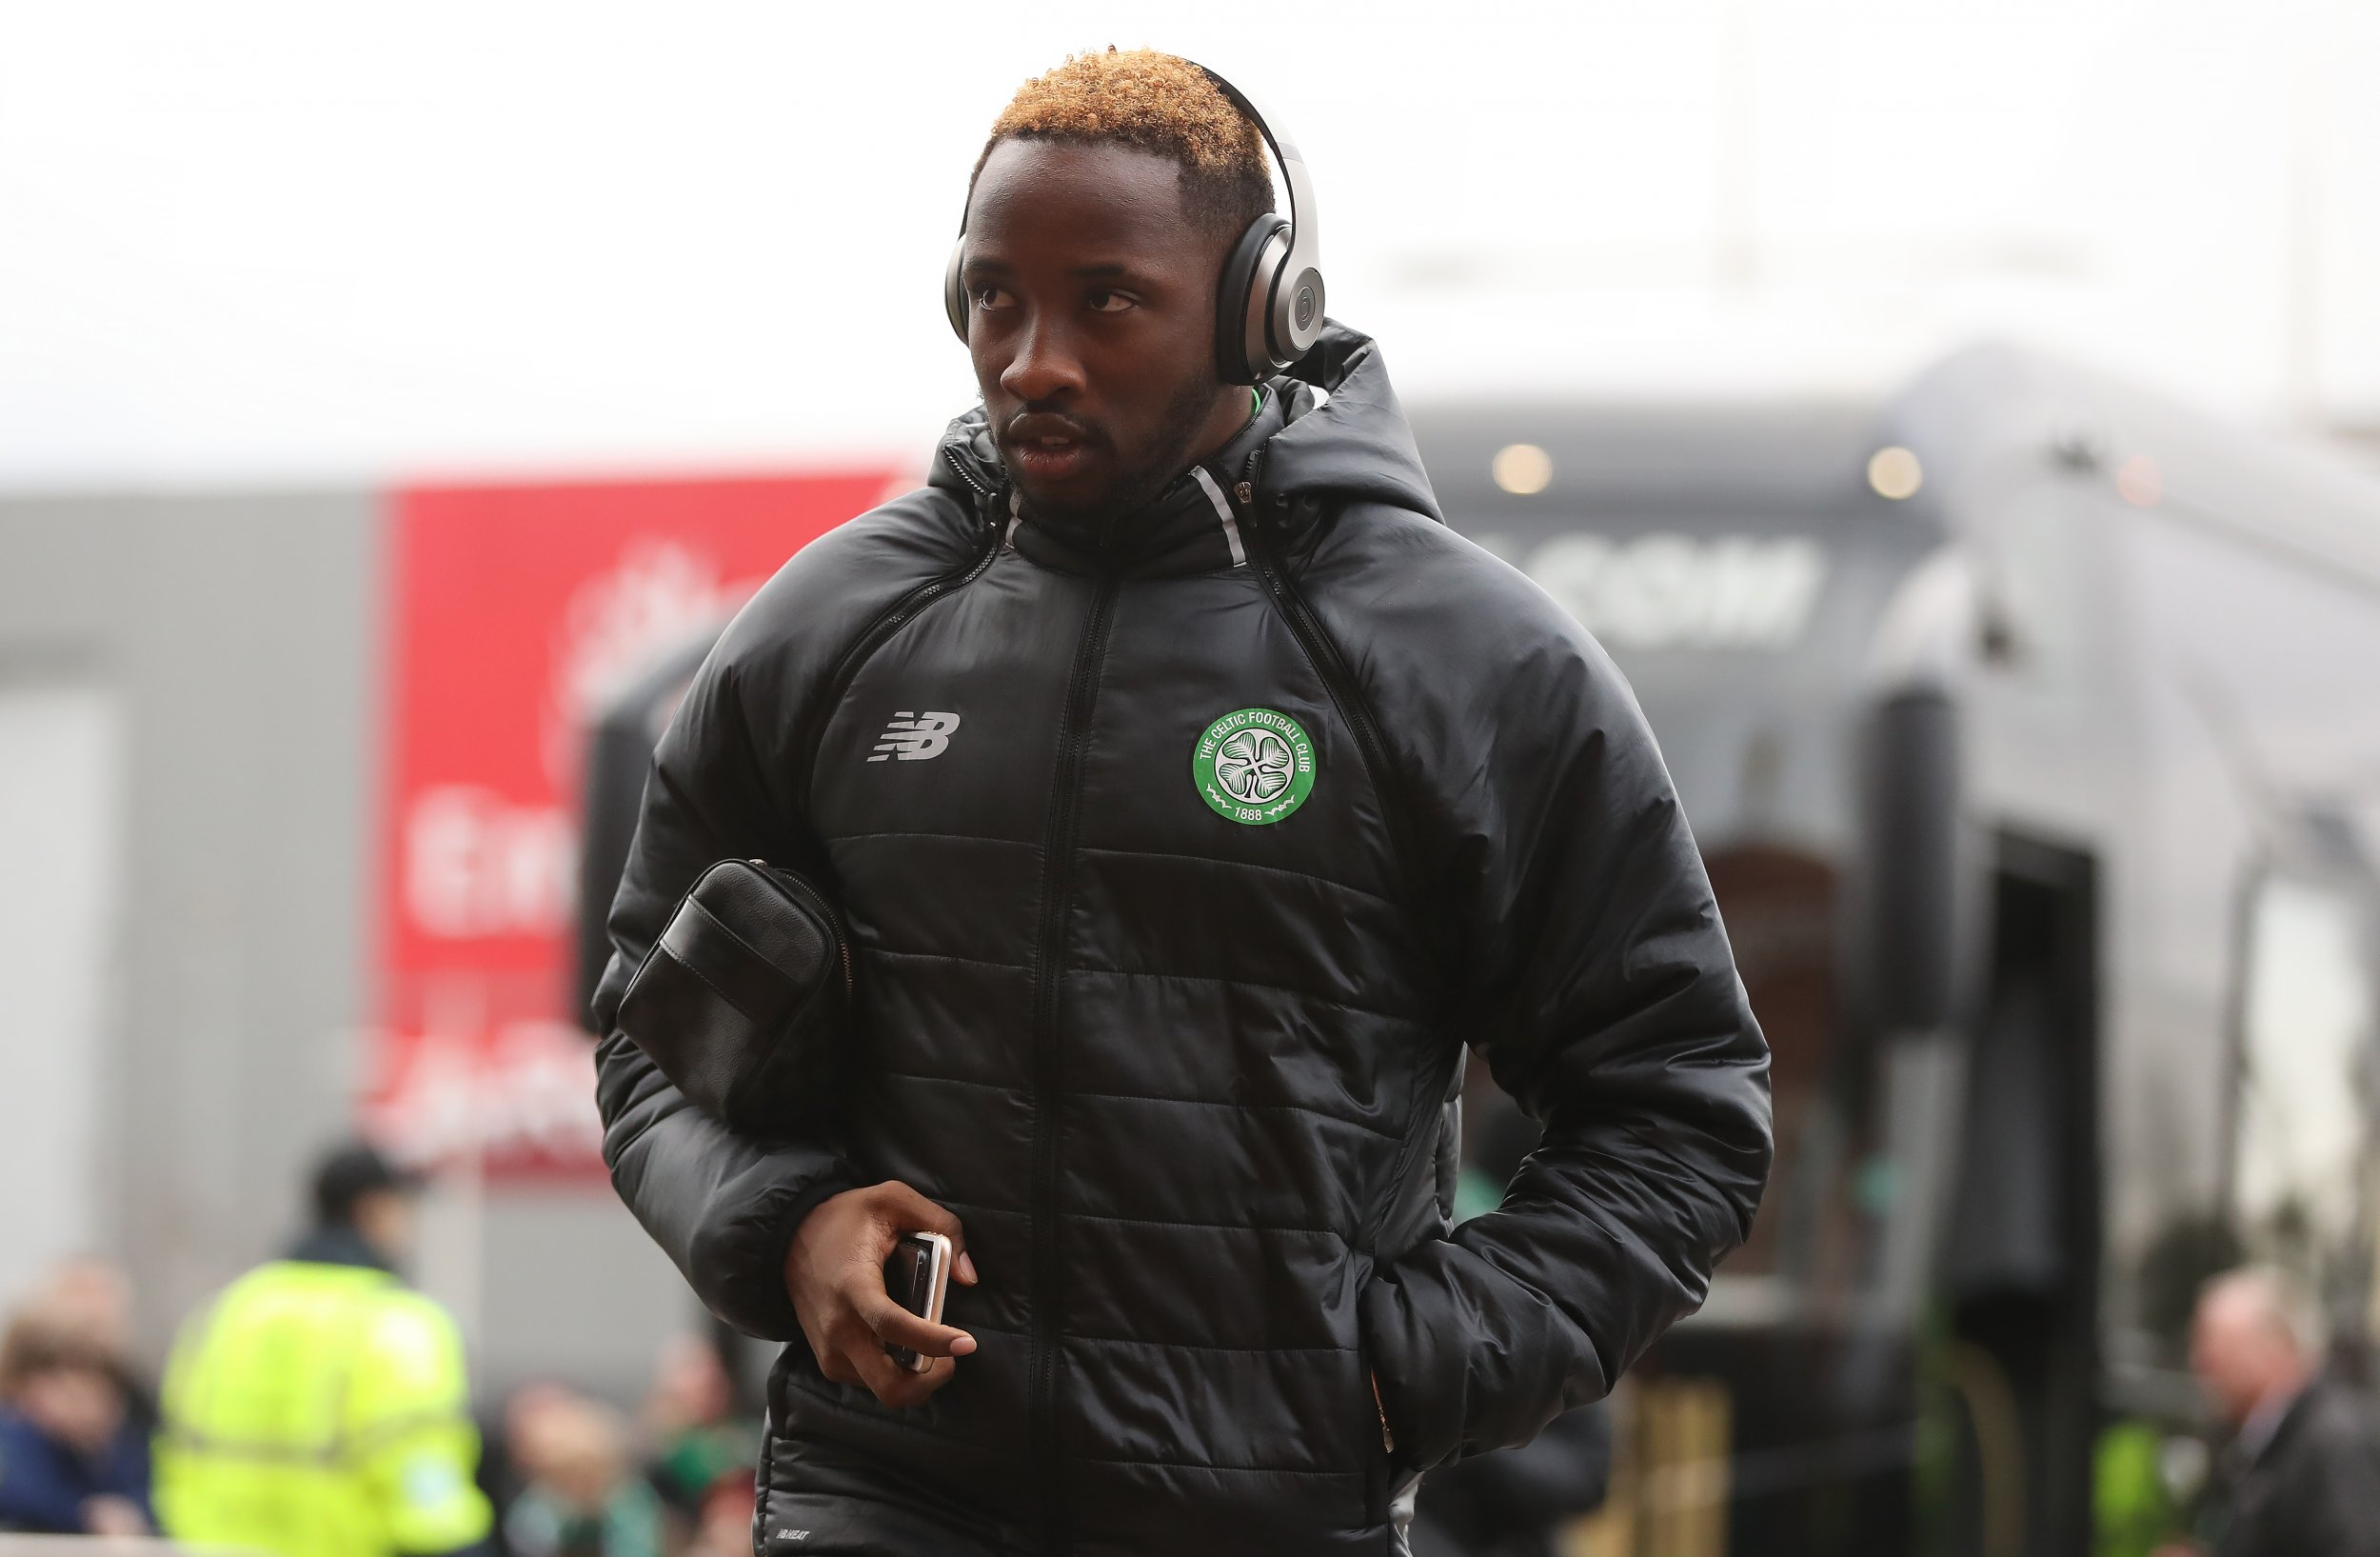 Moussa Dembele of Celtic at Celtic Park, Glasgow, Scotland, February 18.